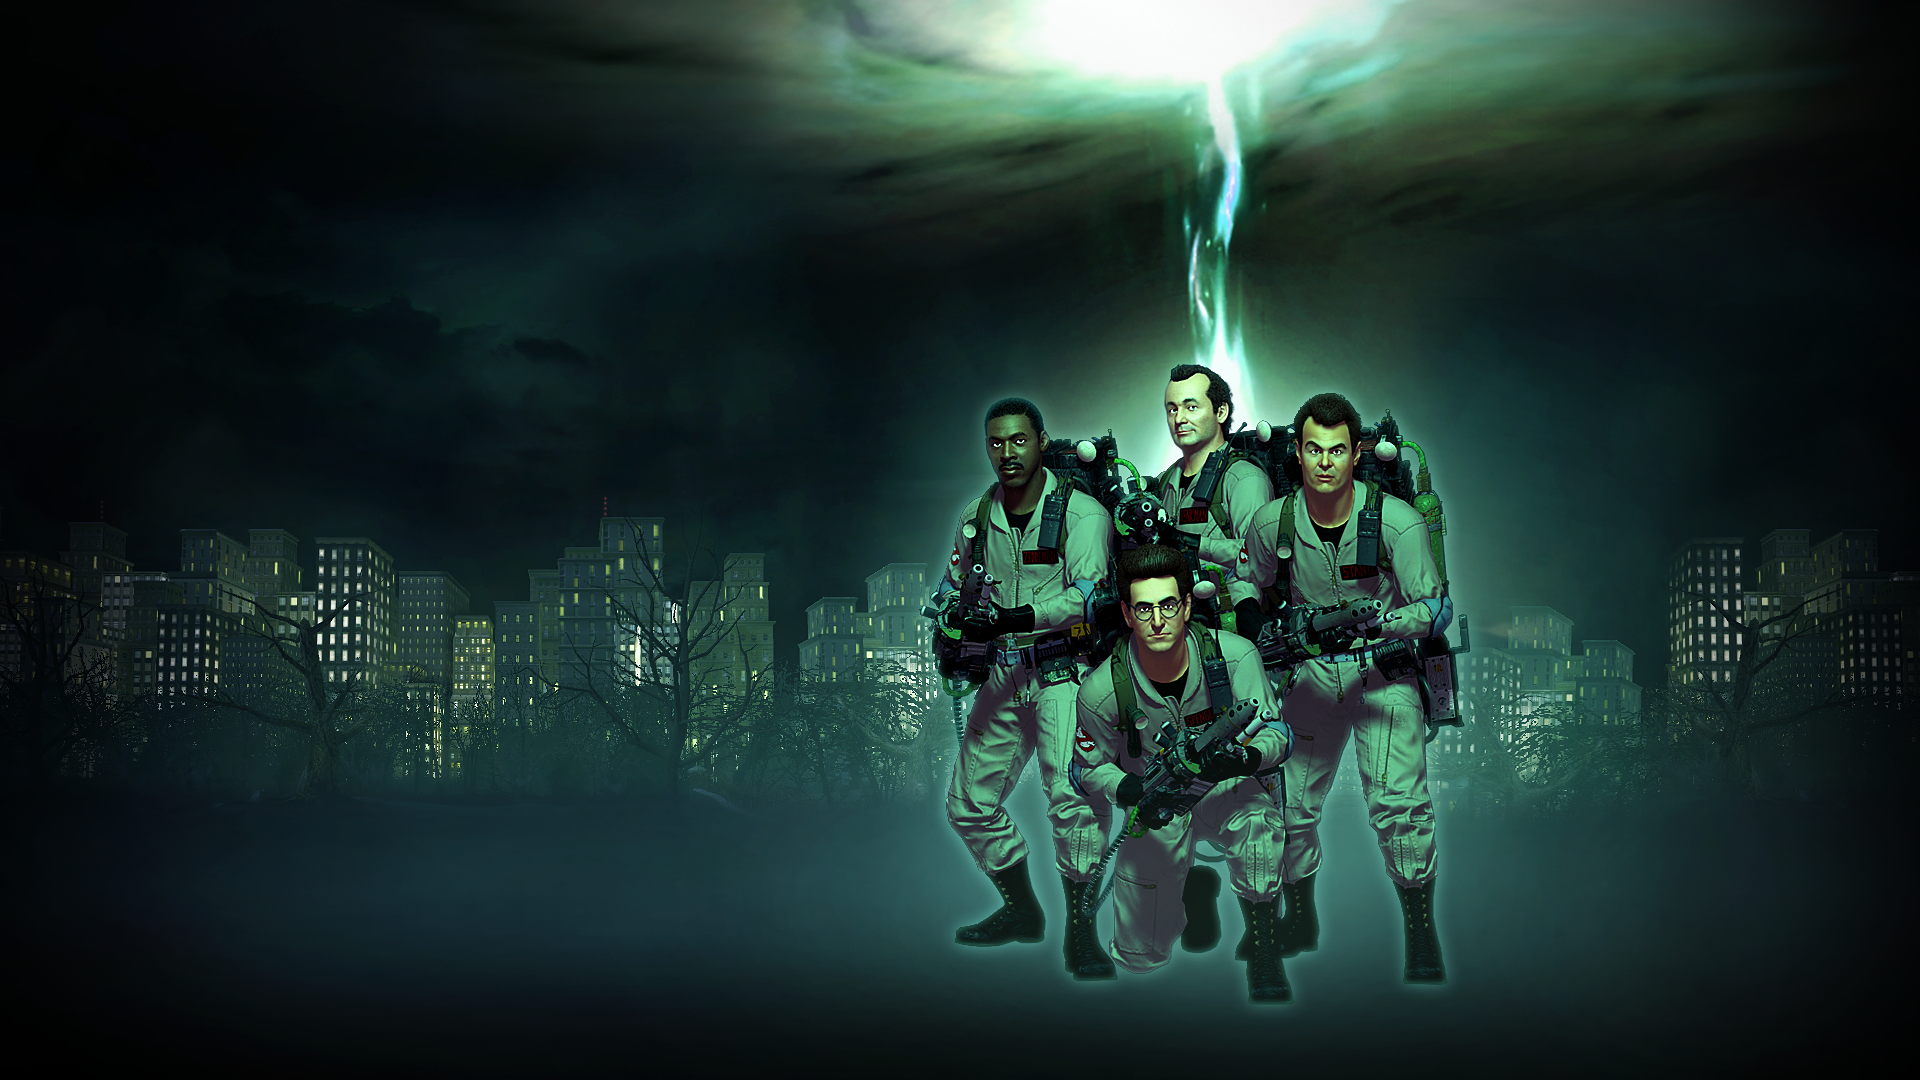 Ghostbusters 3d Picture Hd Desktop Background Wallpapers Hd Free 603704 Ghostbusters Desktop Wallpapers Backgrounds Ghostbusters Movie